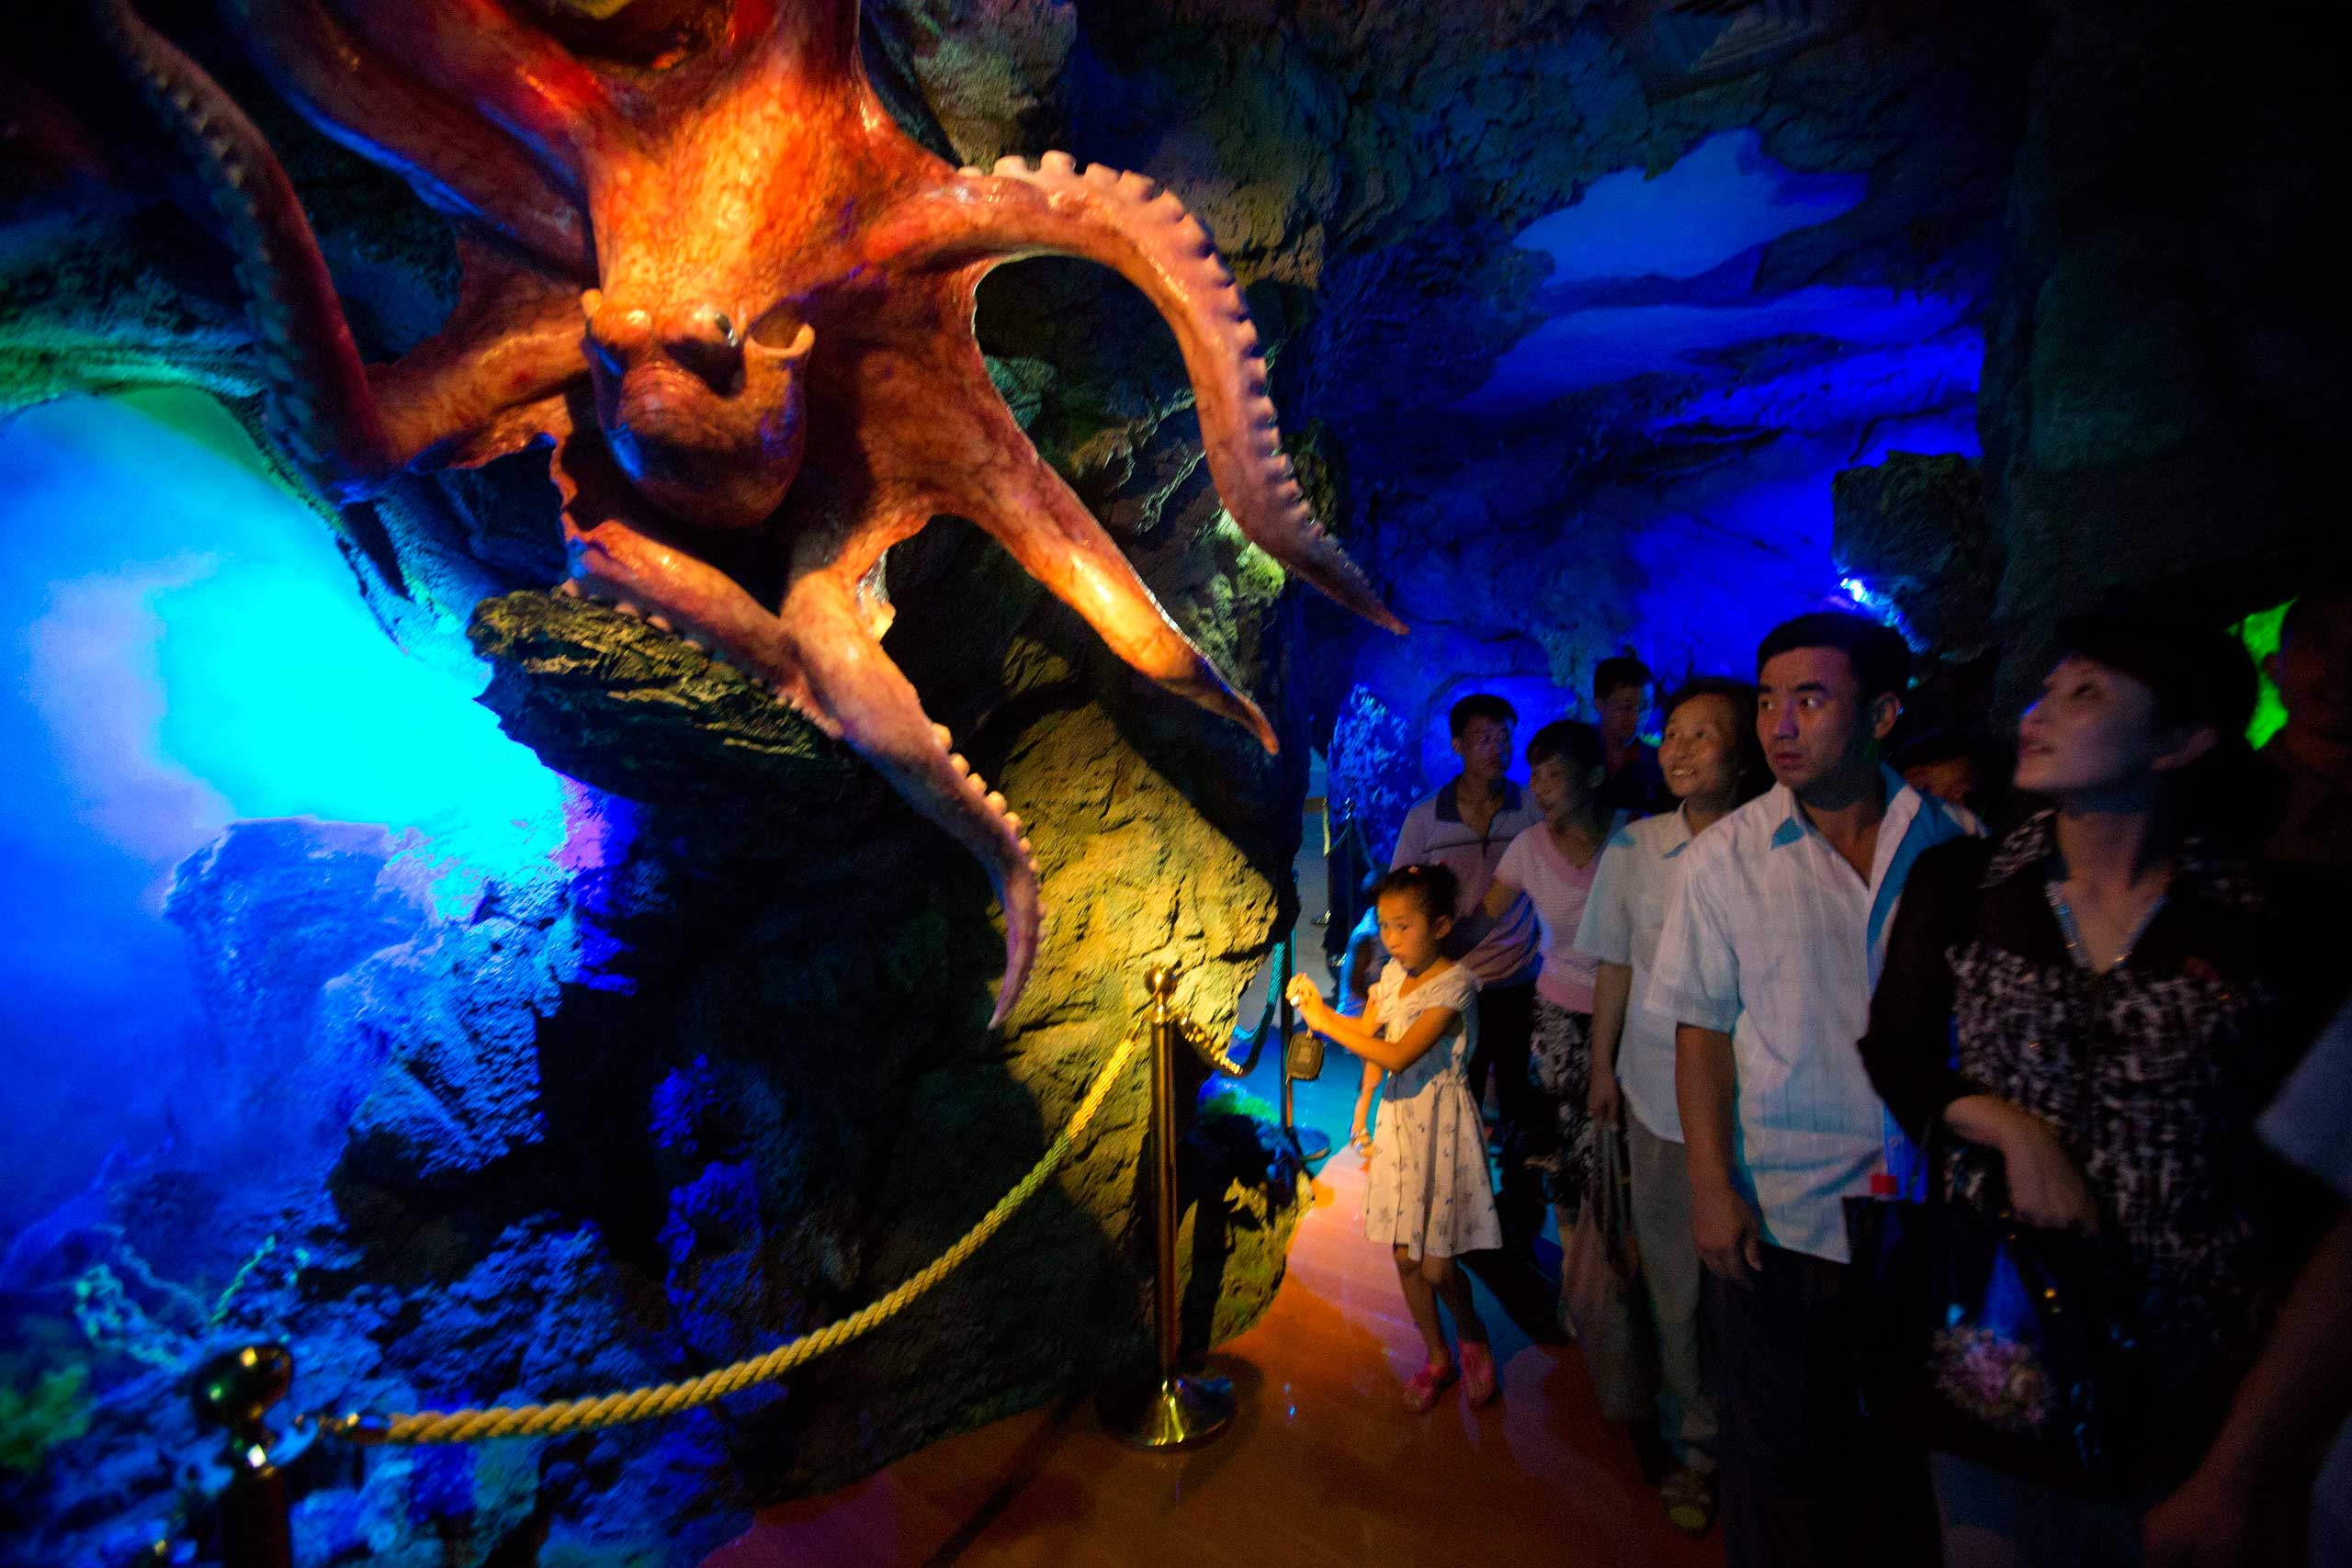 Aug. 8, 2012. North Koreans look at a model of an octopus as they tour a dolphin show facility at a newly-built amusement park in Pyongyang, North Korea.